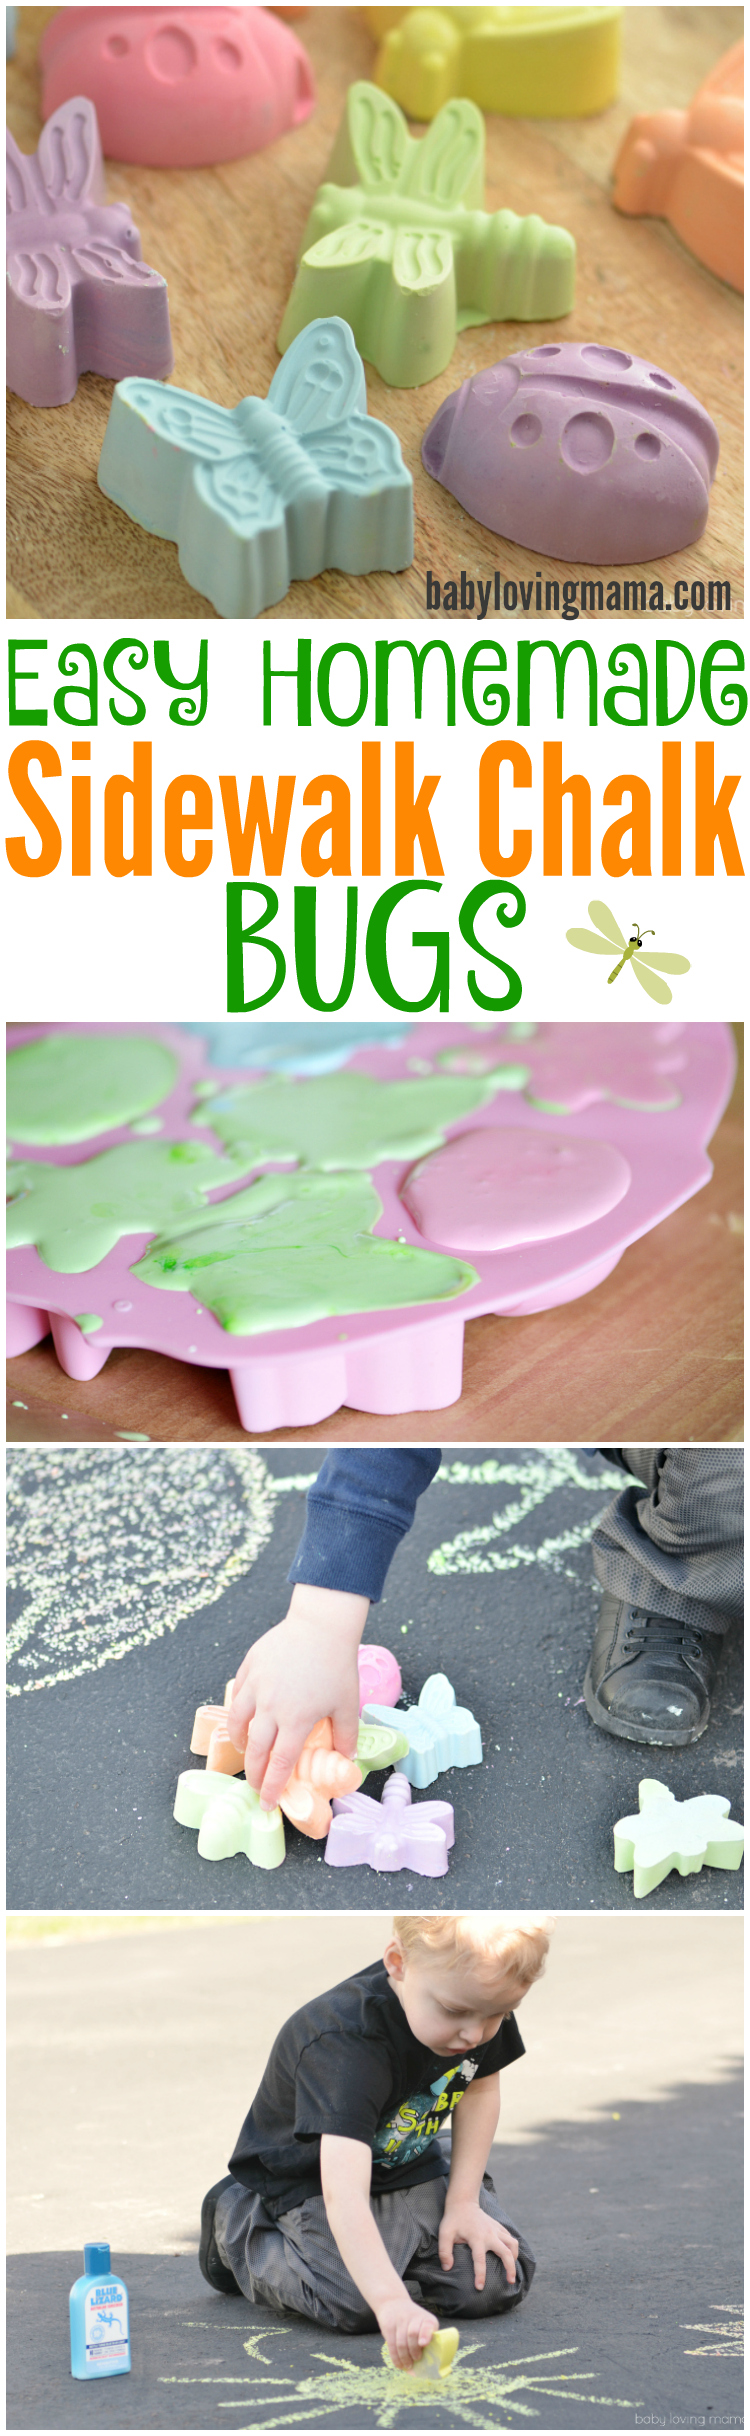 Learn how to make these Easy Homemade Sidewalk Chalk Bugs with just a few ingredients. Make a great outdoor summer activity for kids or party favors!